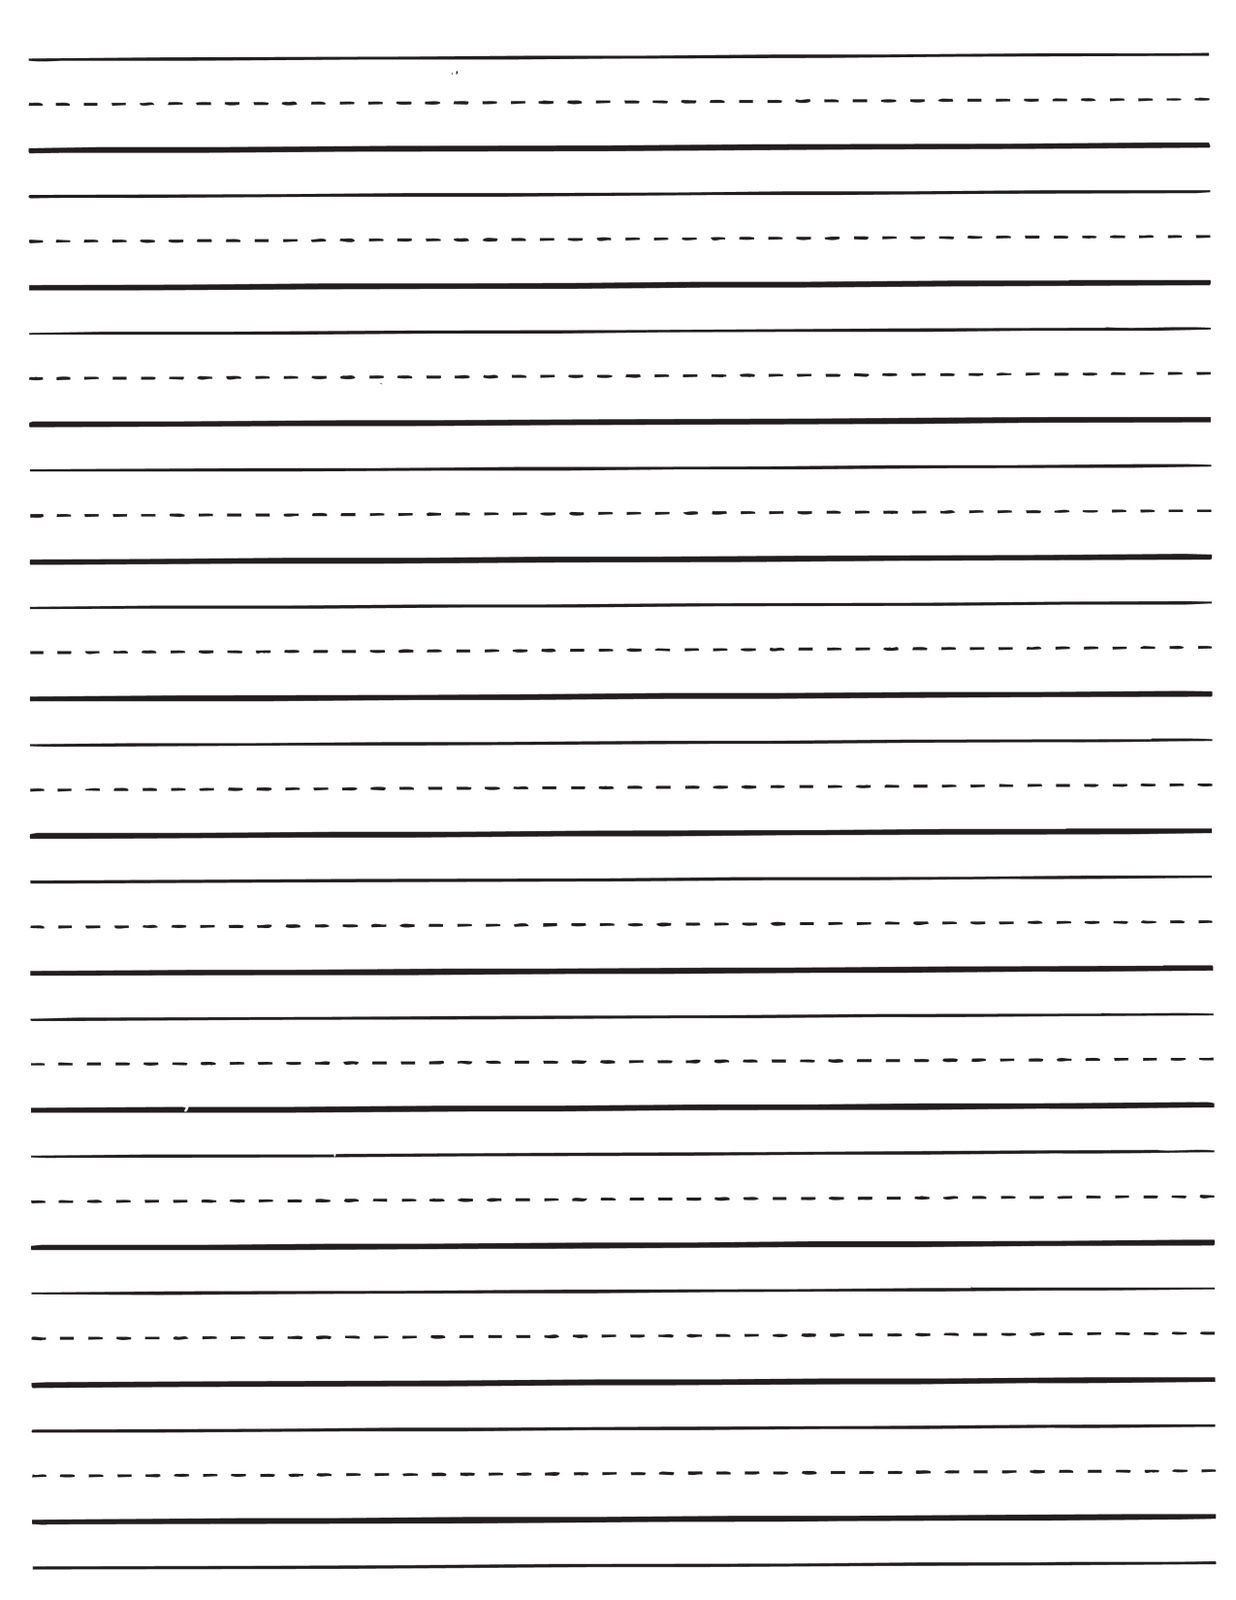 Second Grade Ruled Paper | Lined Paper for you | TeAchIng iDeaS ...